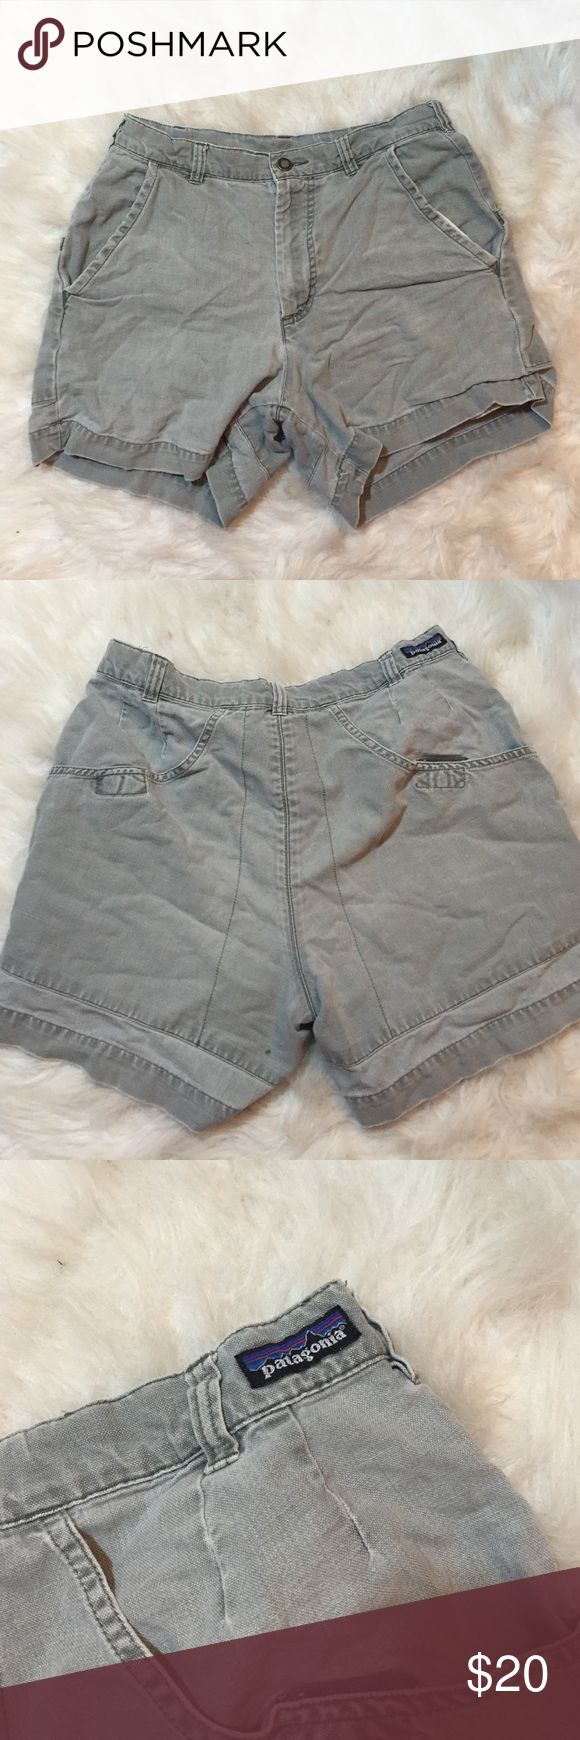 Patagonia outdoors shorts Great shorts for hiking and camping. These shorts are breathable and soft. Making any outdoor activity exceptionally comfortable. No damage, slightly worn from wear but these shorts still have a lot of life! Patagonia Shorts Cargos